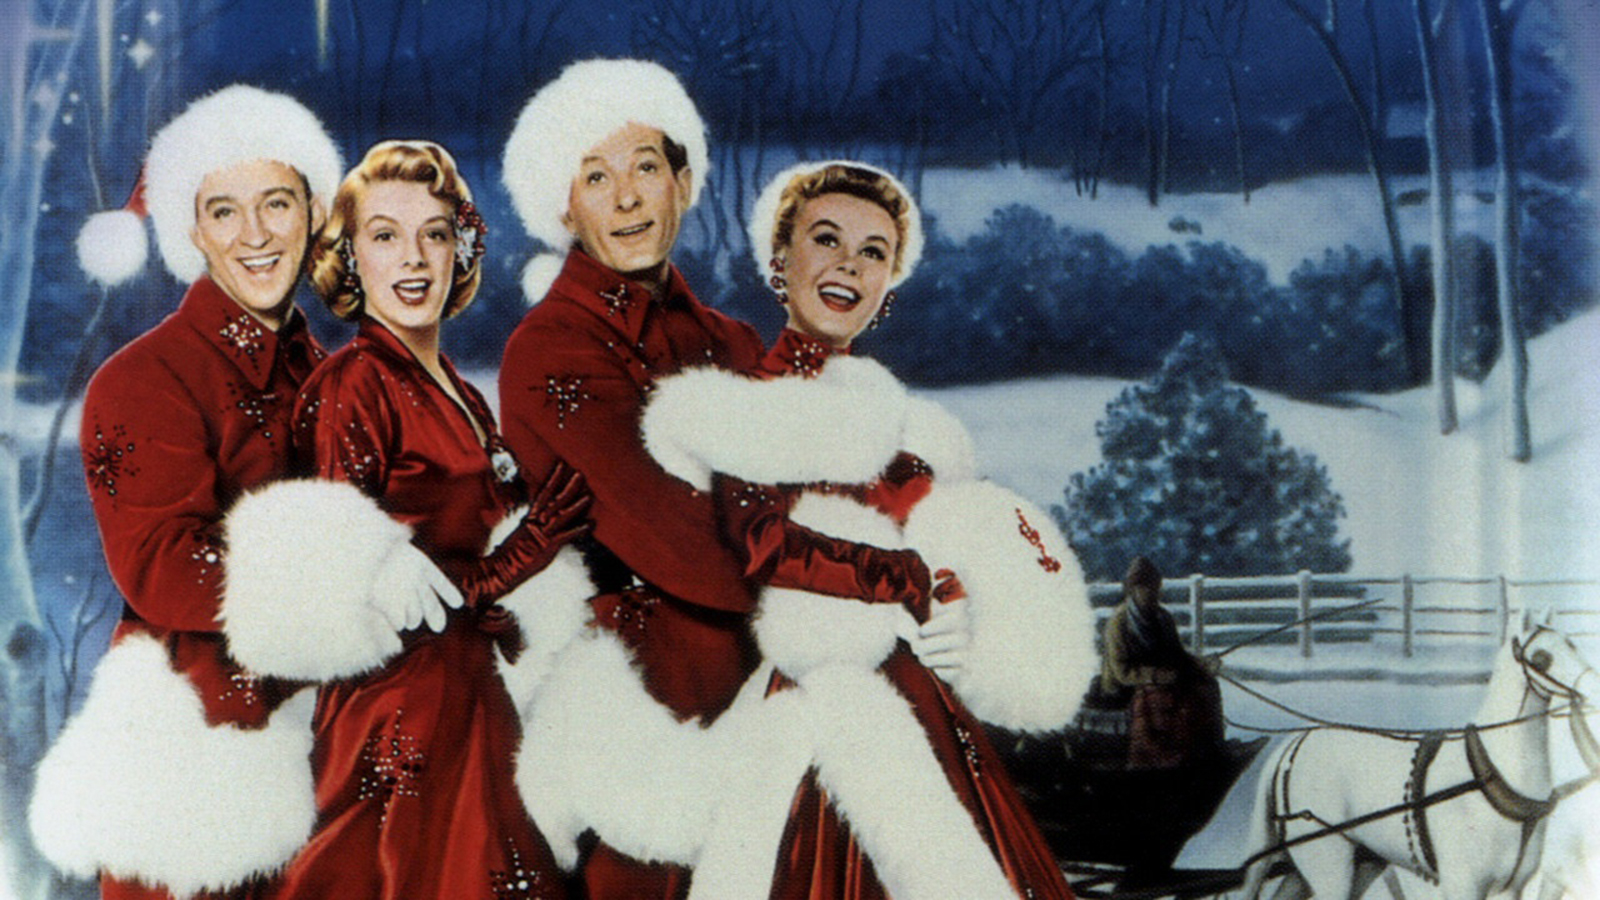 White Christmas Source: https://i2.wp.com/netflixlife.com/files/2015/11/White-Christmas.jpg